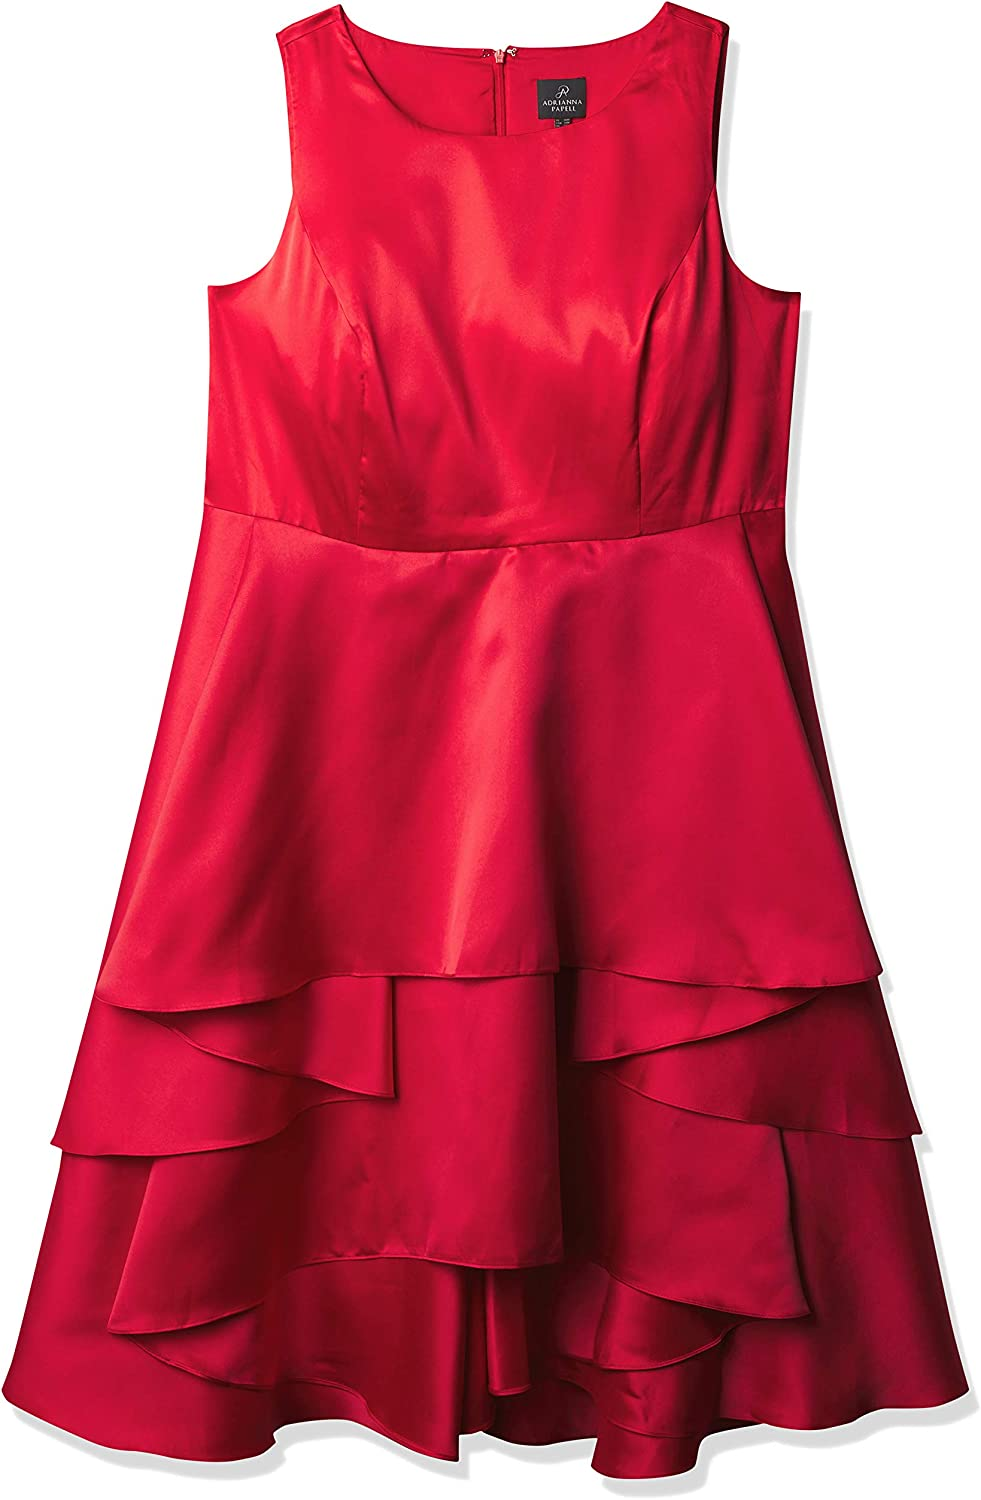 Adrianna Papell Women's Size Fabric Combo Fit and Flare Dress Plus